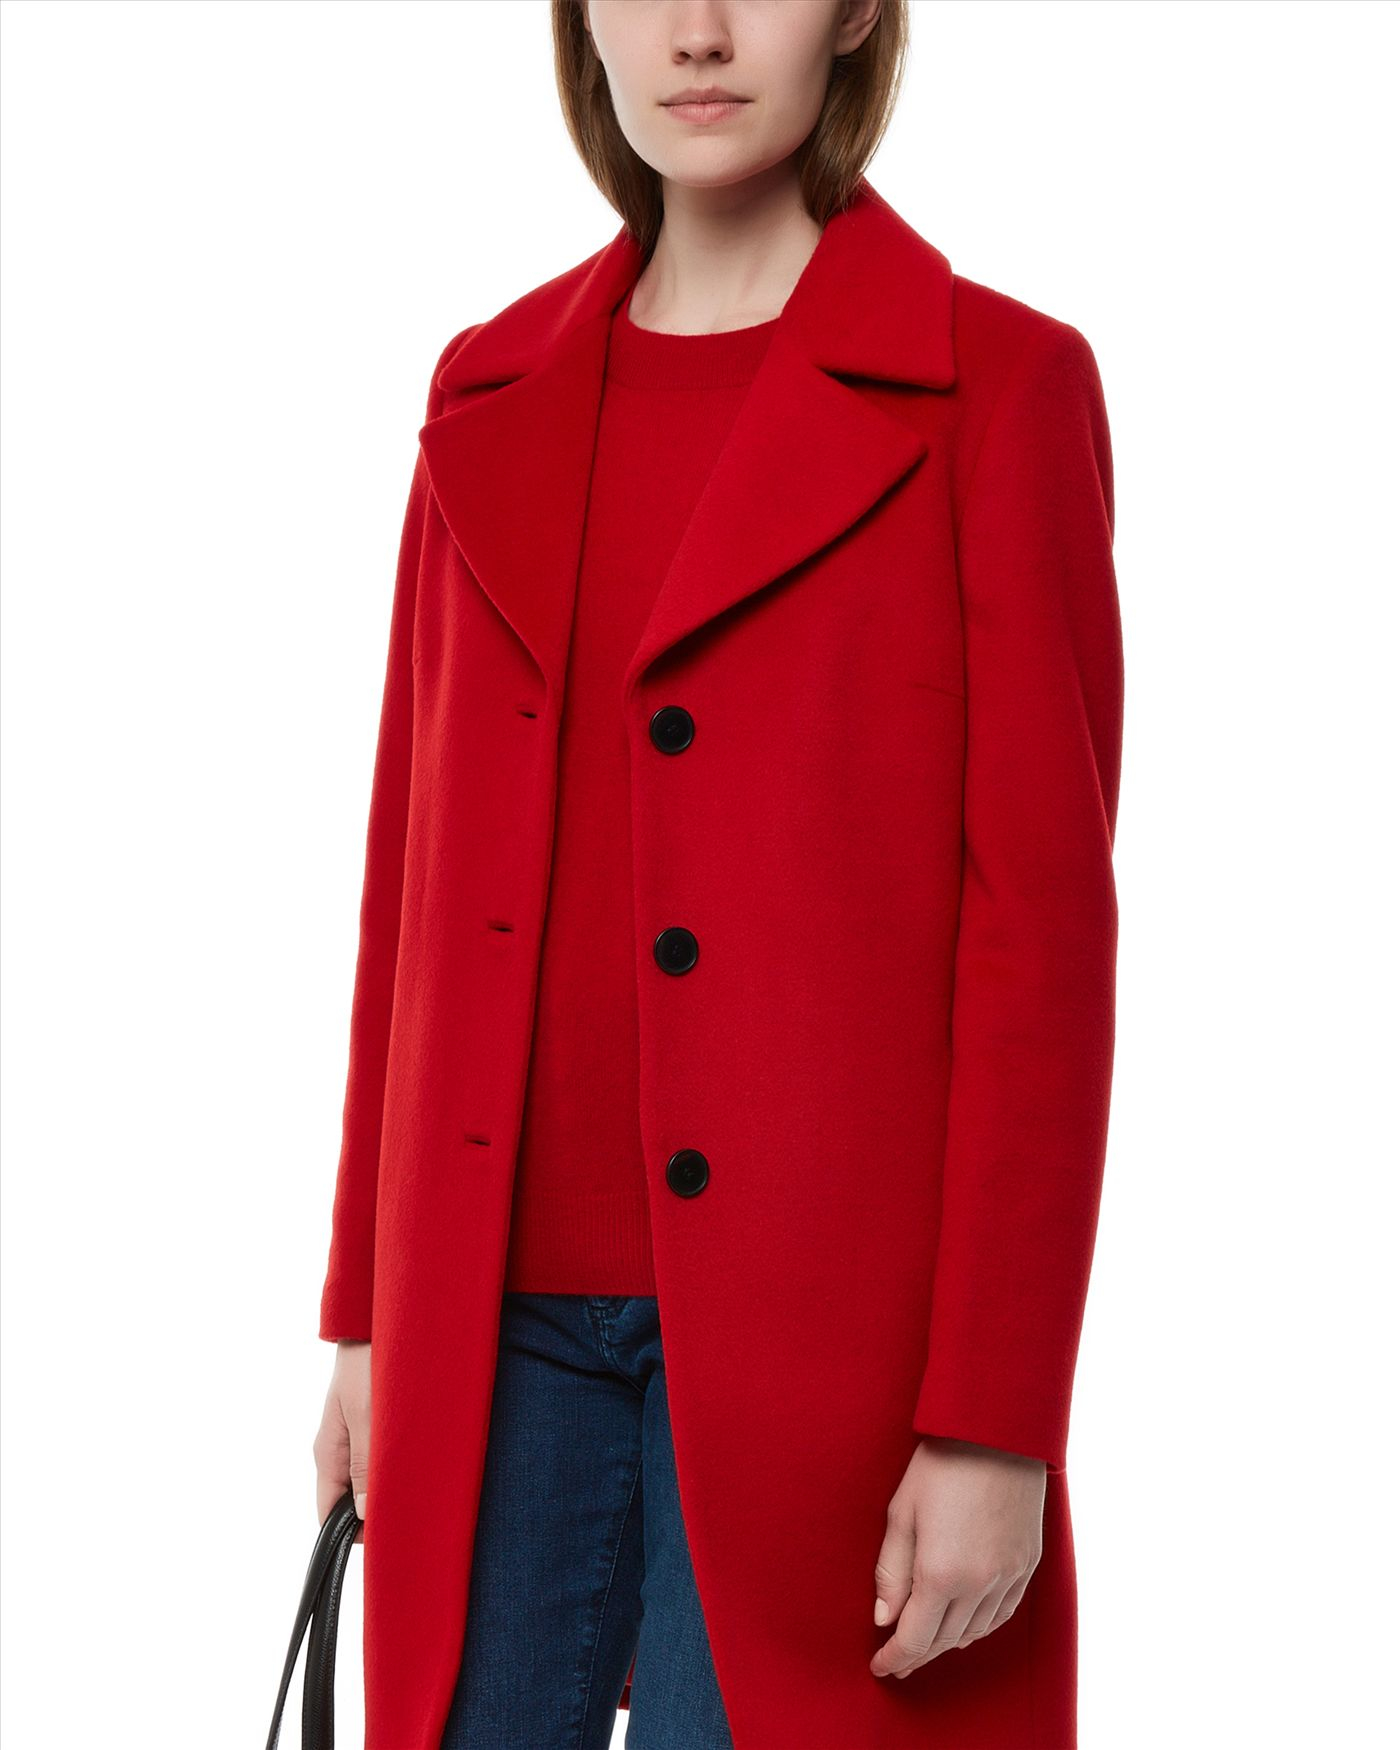 Jaeger Wool Three-button Coat in Red | Lyst